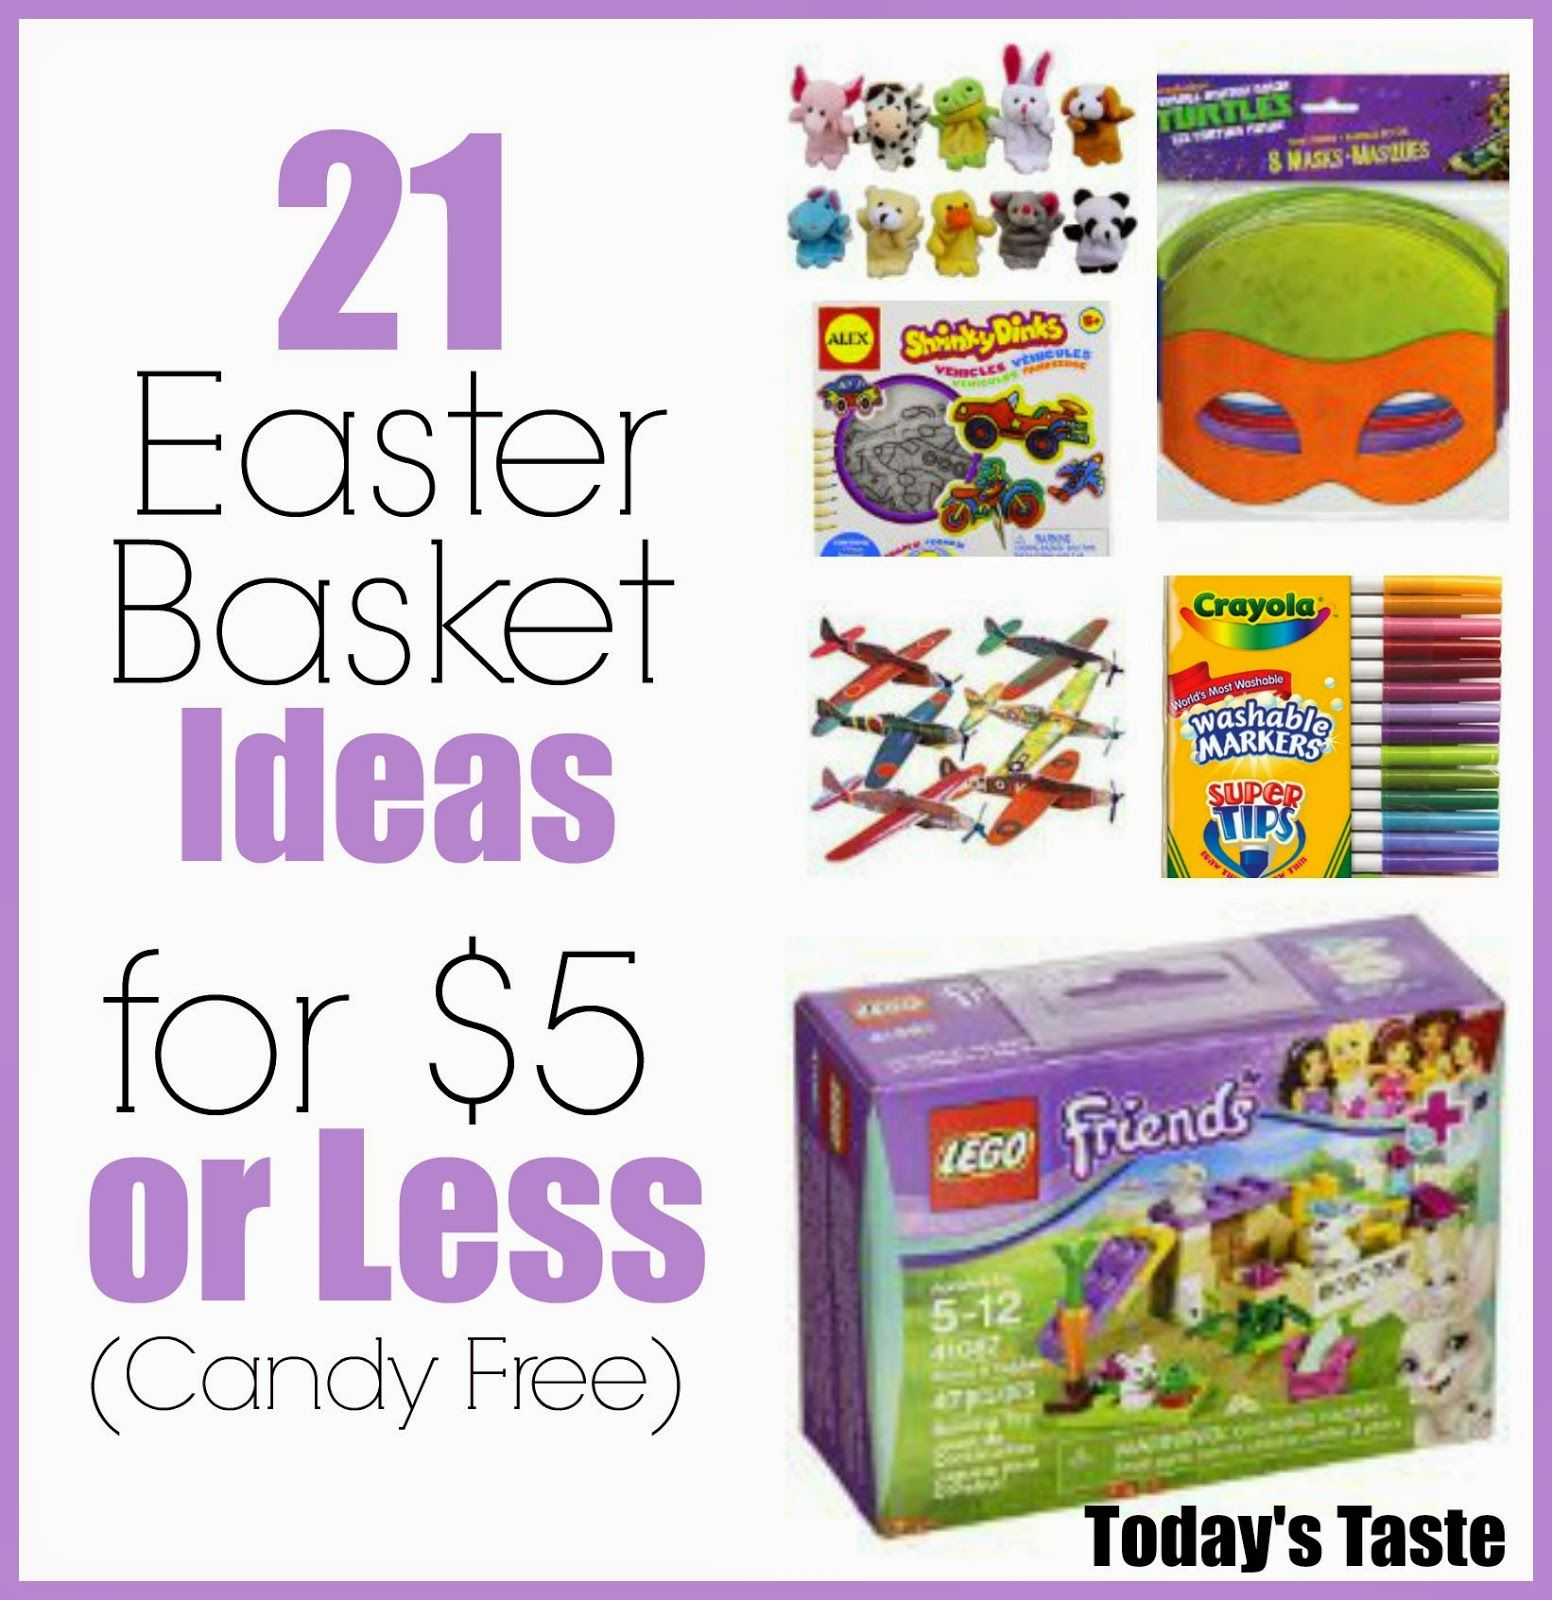 21 easter basket ideas that are 5 or less easter will be here 21 easter basket ideas that are 5 or less easter will be here before we negle Gallery